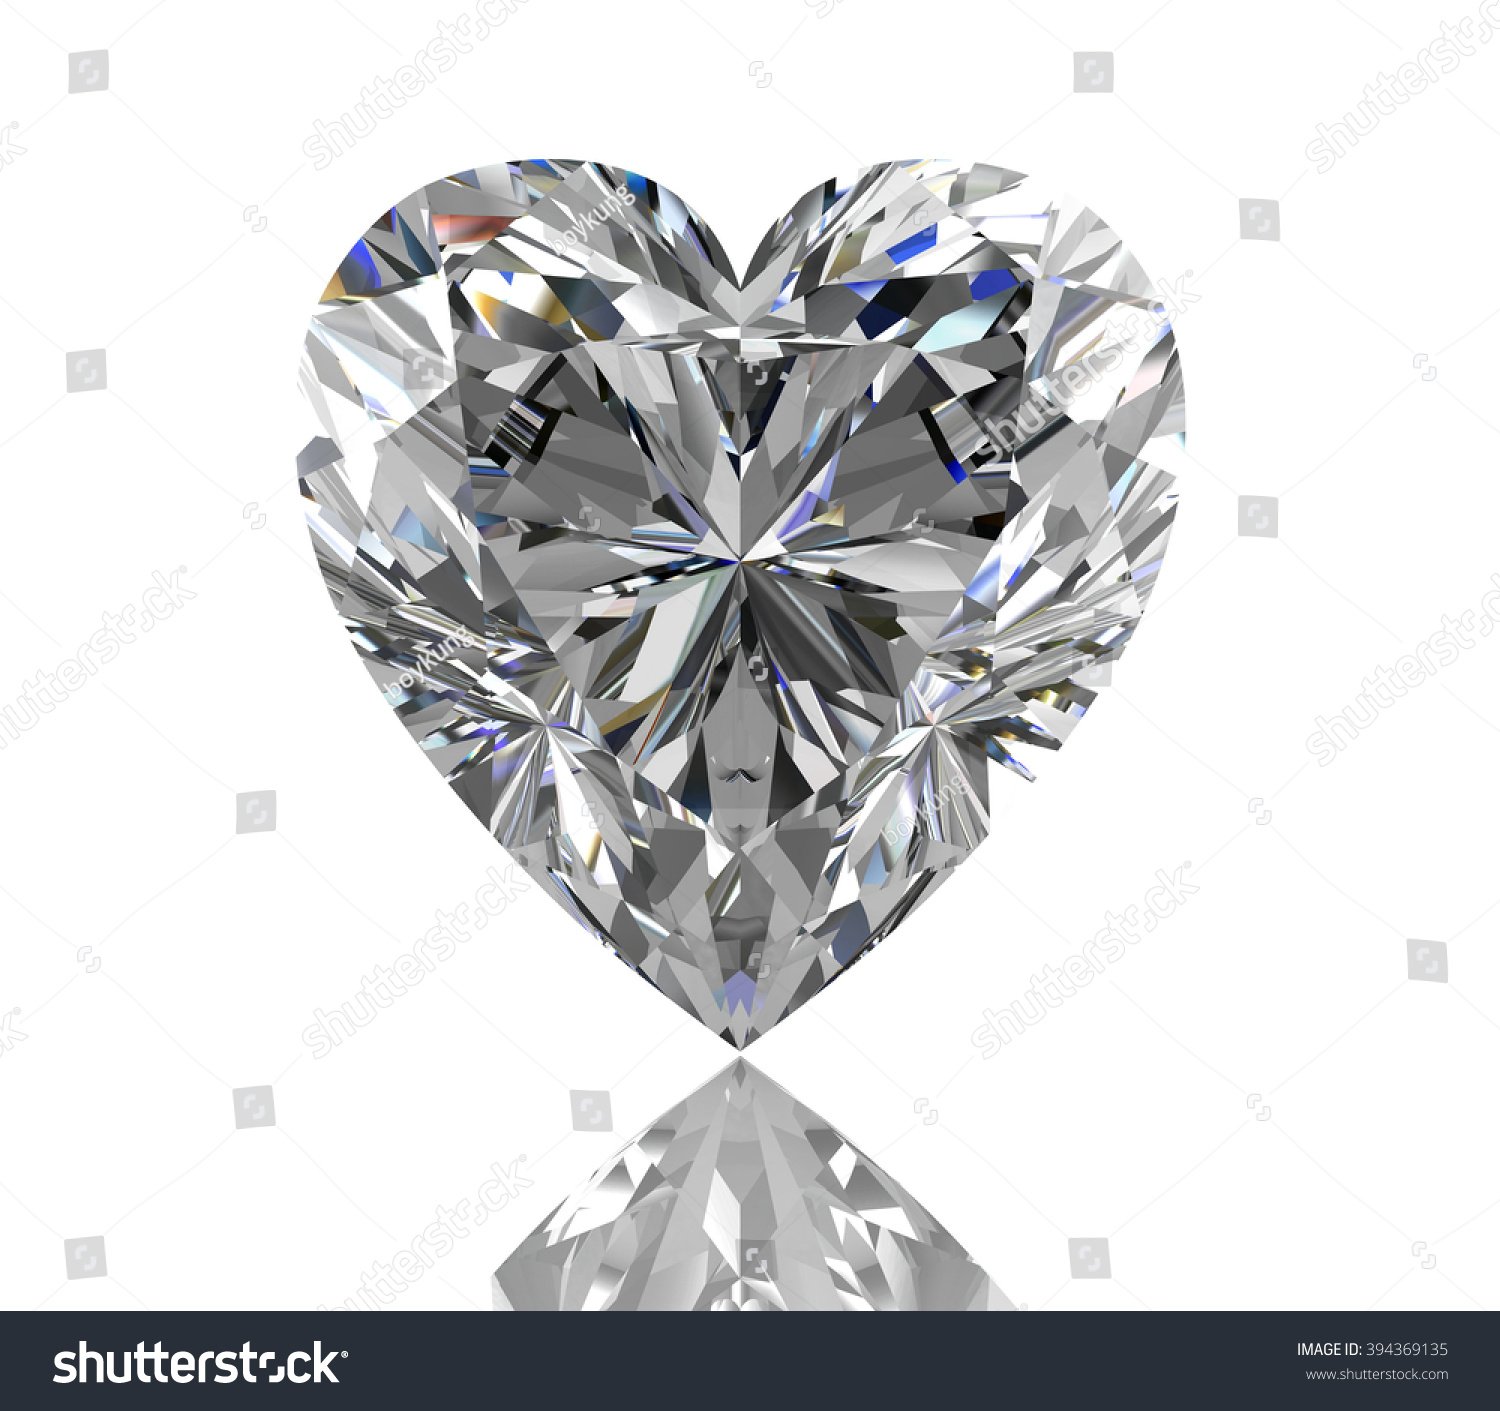 of illustration photos stock high quality diamond gemstone